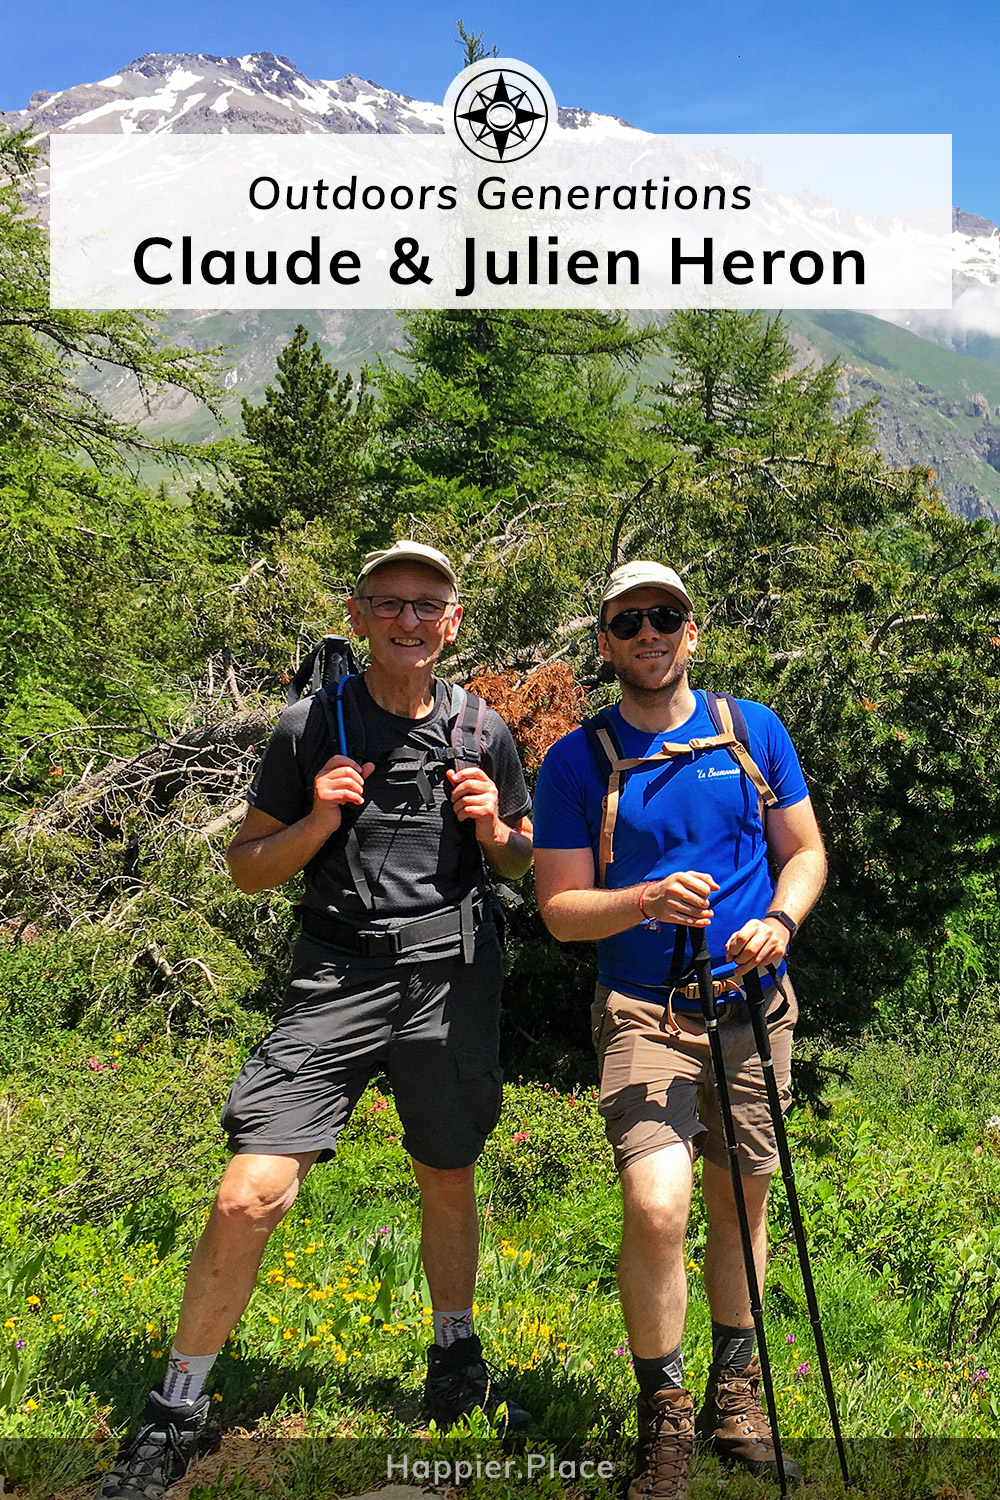 Claude and Julien Heron: The Father-Son Team Behind Outdoors Generations (France and Canada)